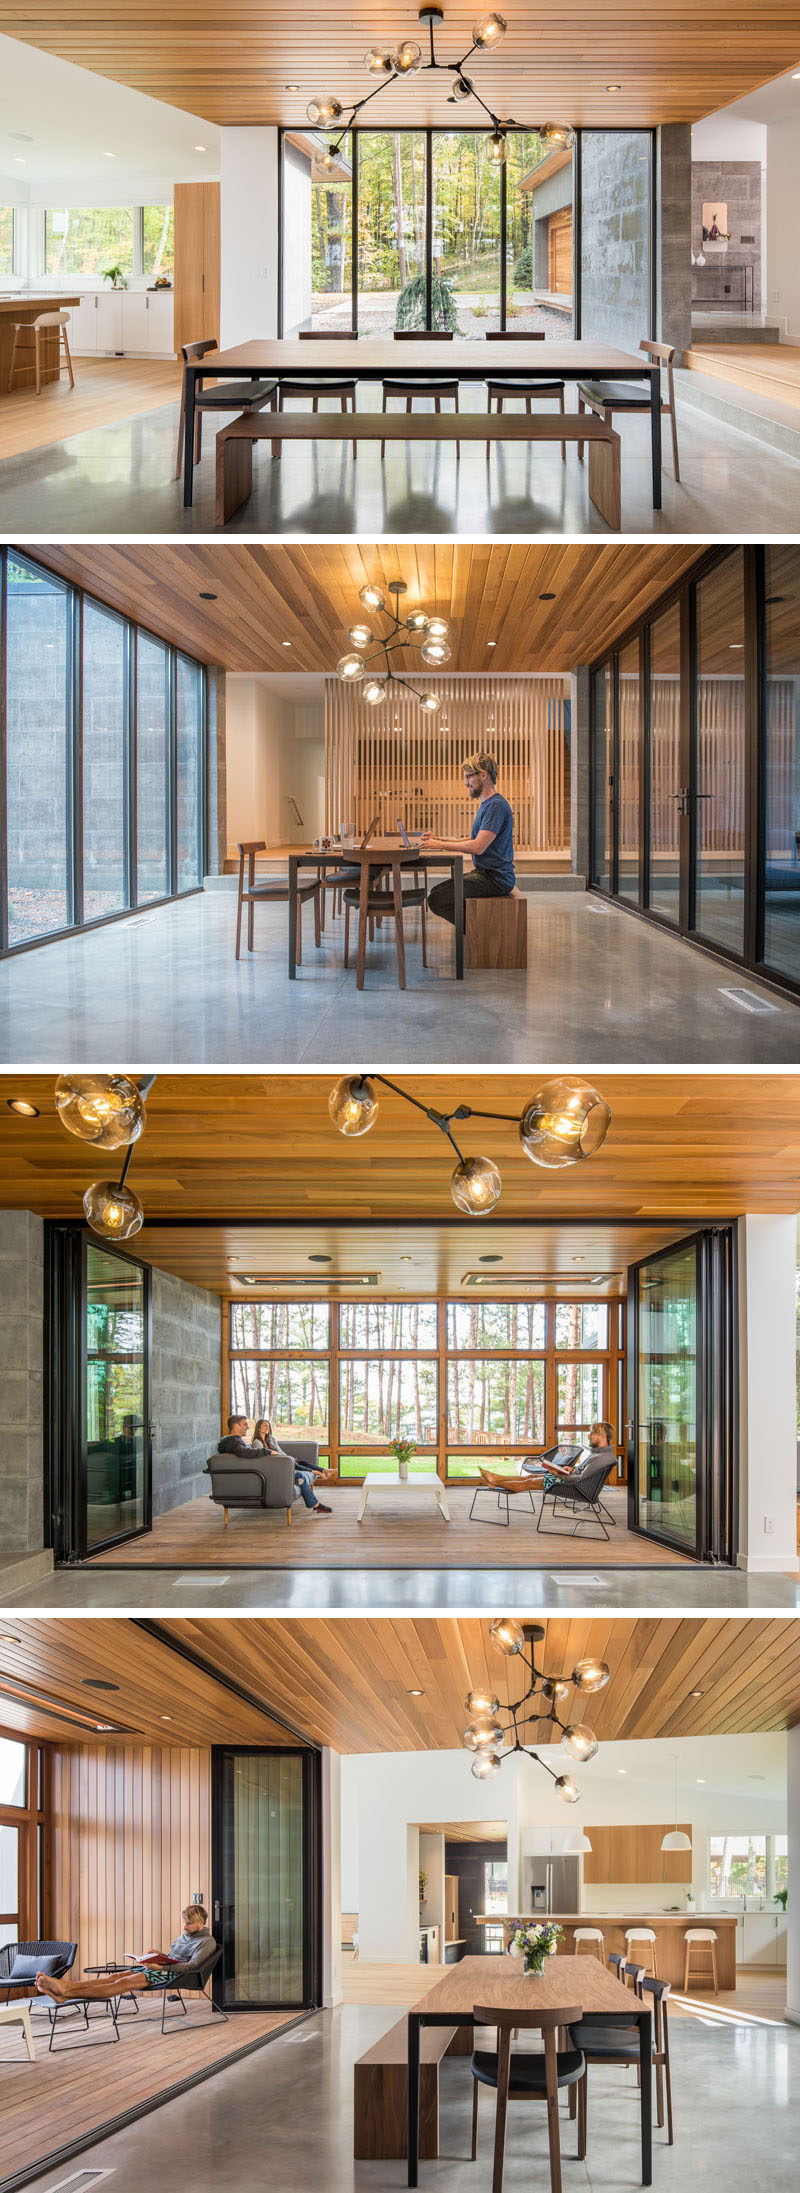 This modern house features a glass core that creates an abundance of light and shows off the lake views. The glass walls also separate the large dining area from a enclosed porch. When needed the glass wall can be opened to expose the porch and increase the size of the interior space. #ModernDiningRoom #GlassWalls #ModernHouse #EnclosedPorch